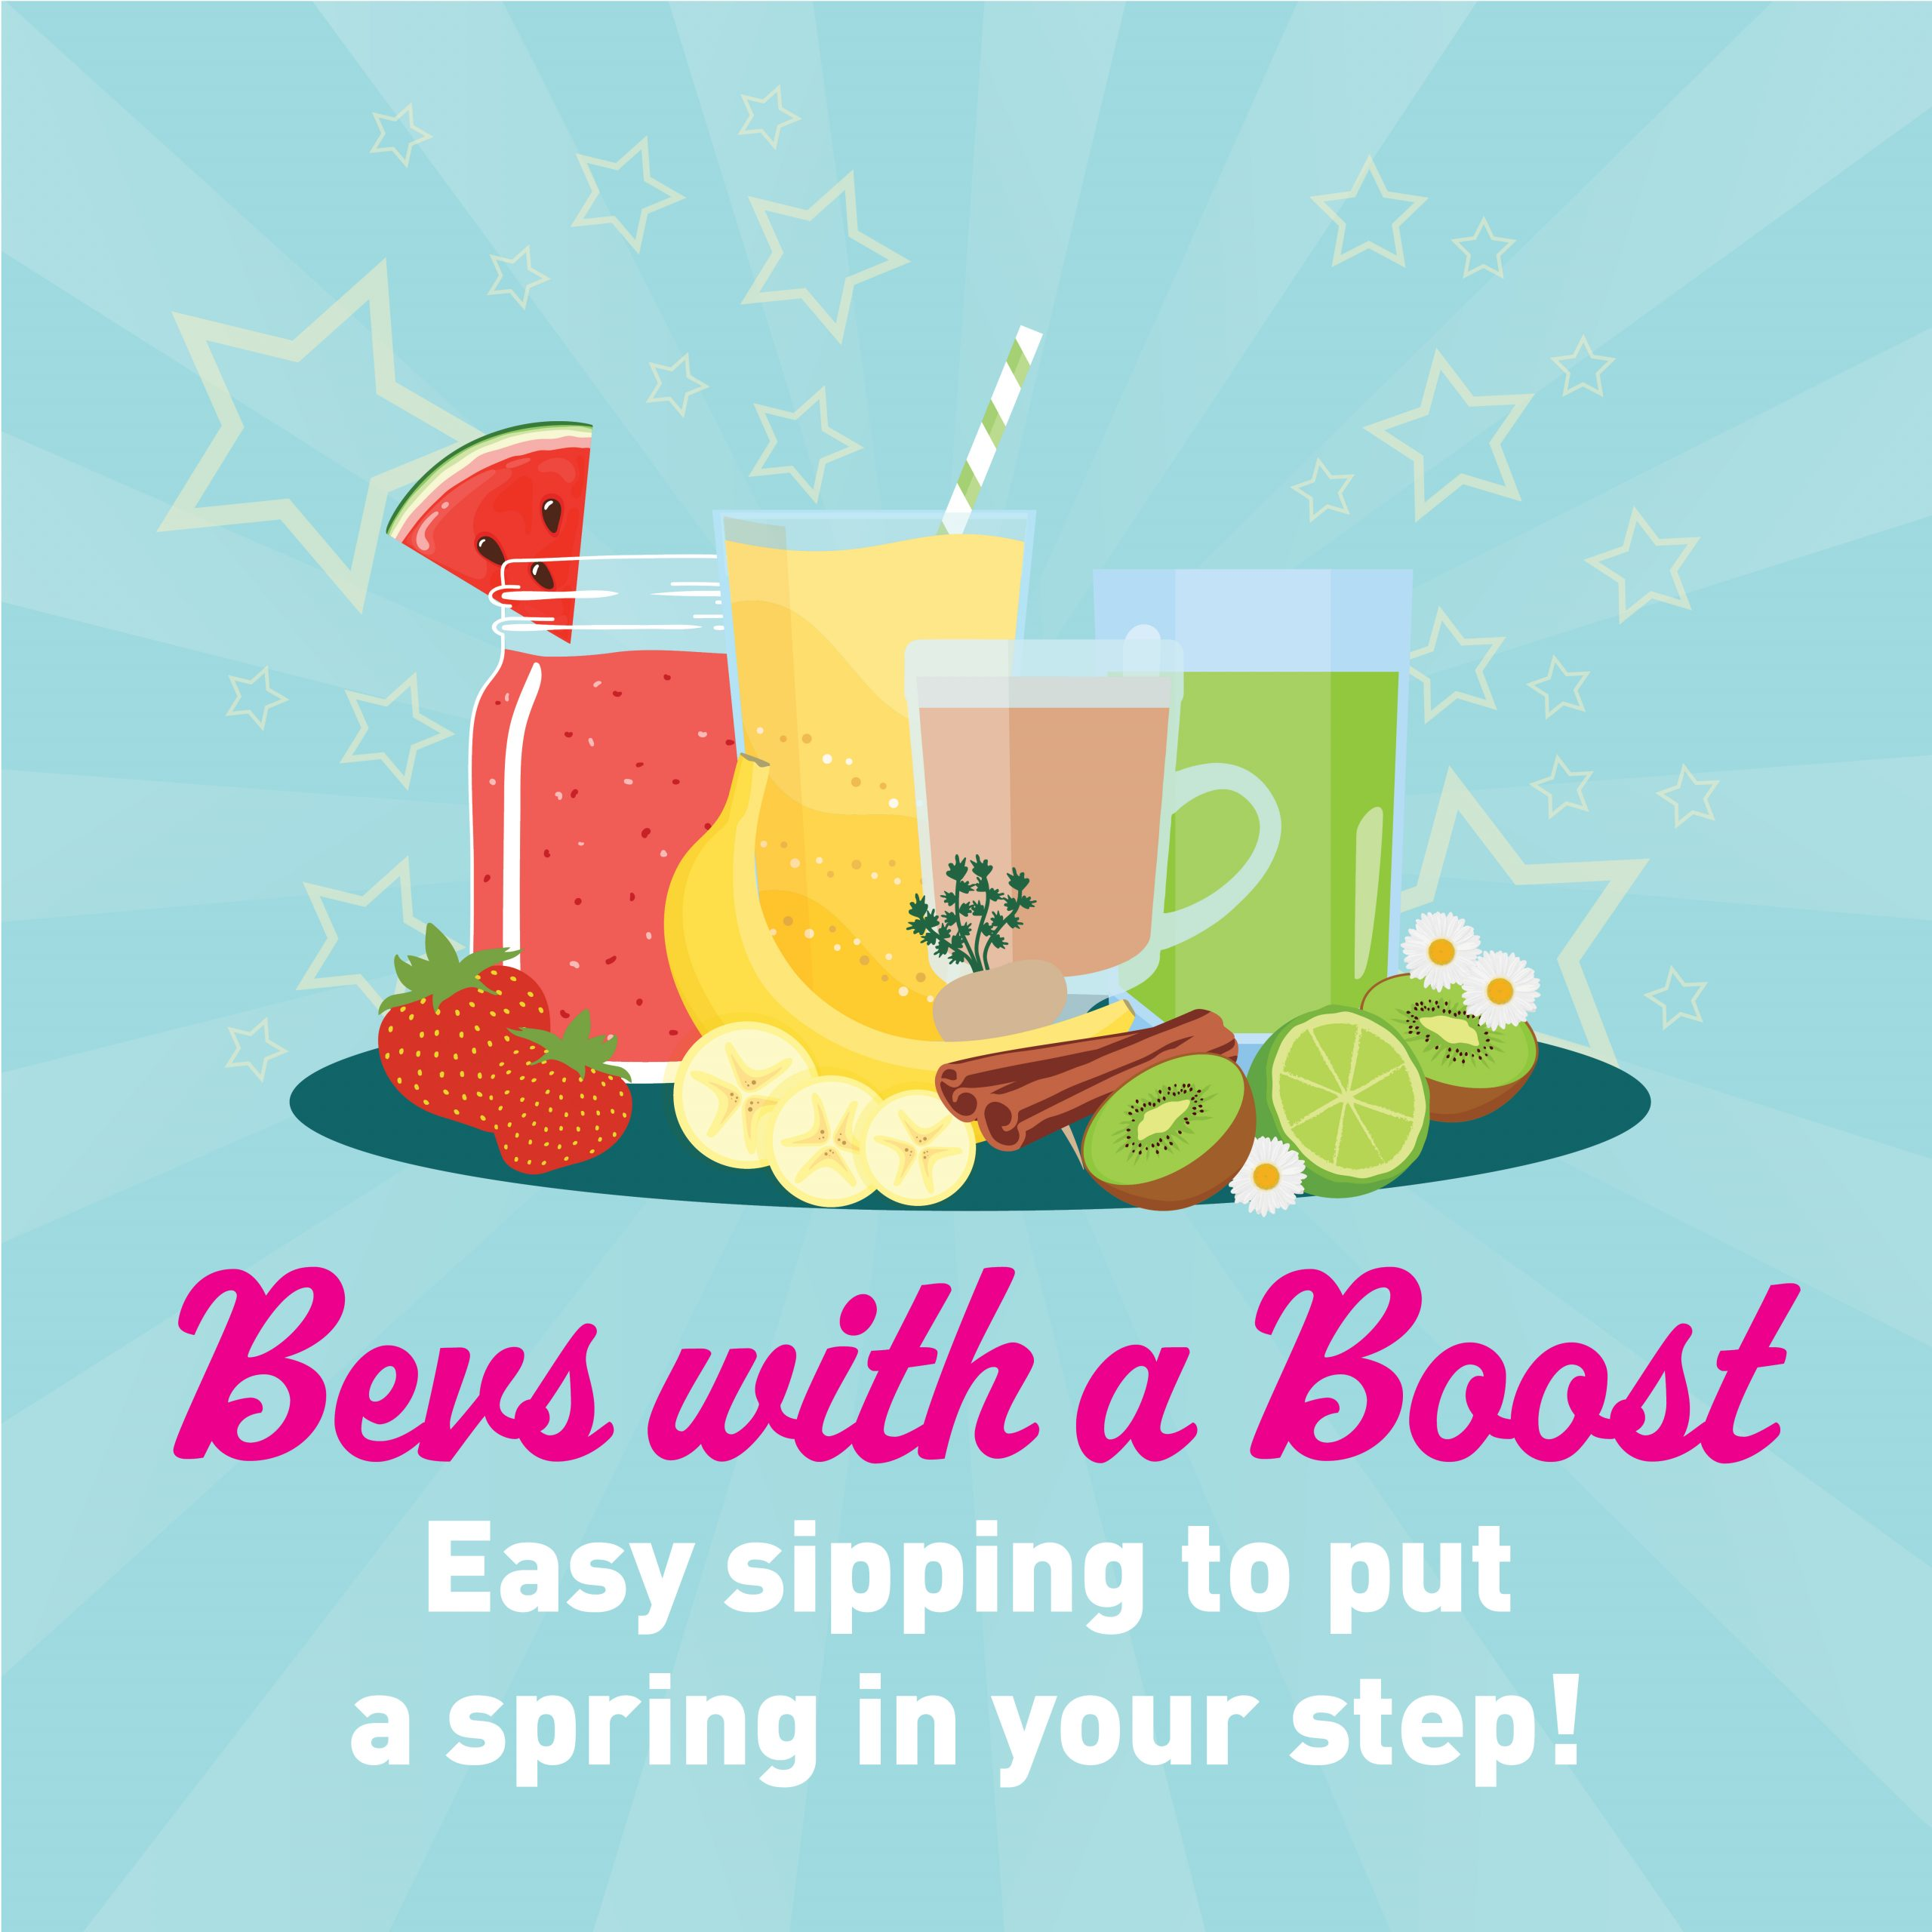 Bevs with a Boost